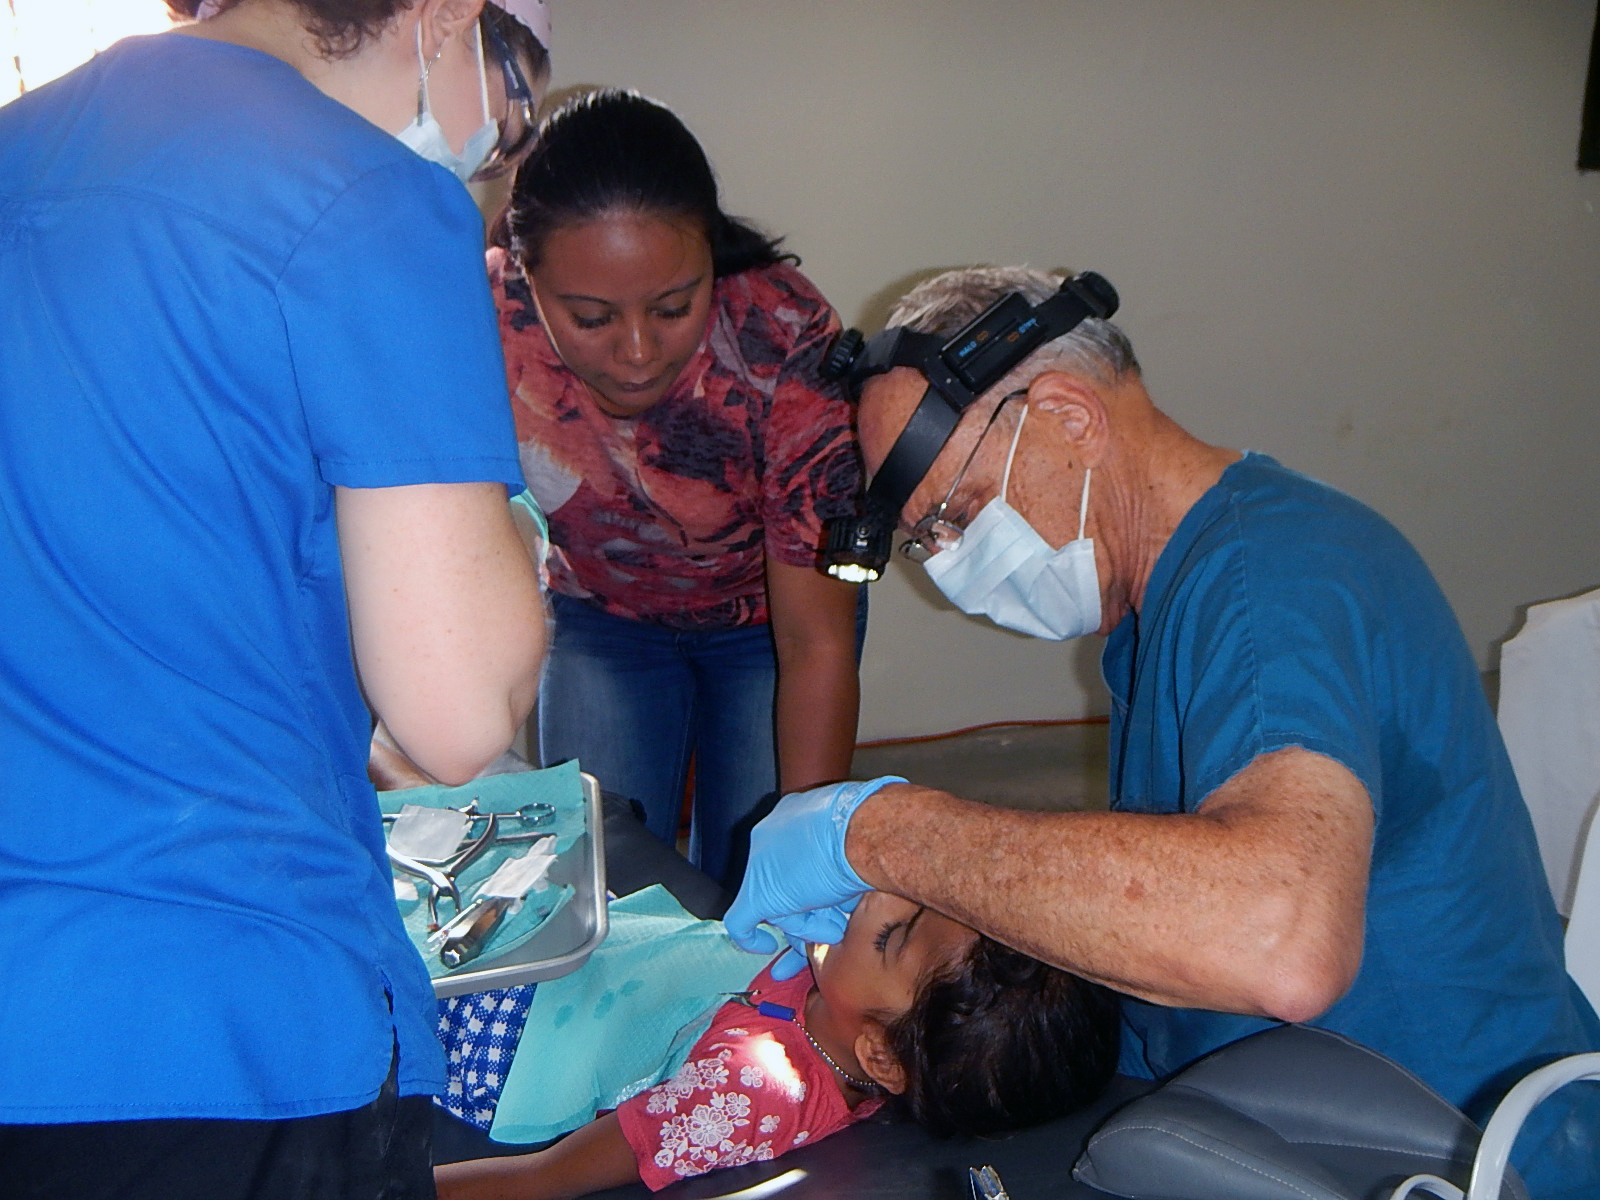 CWE Dentist working on patient